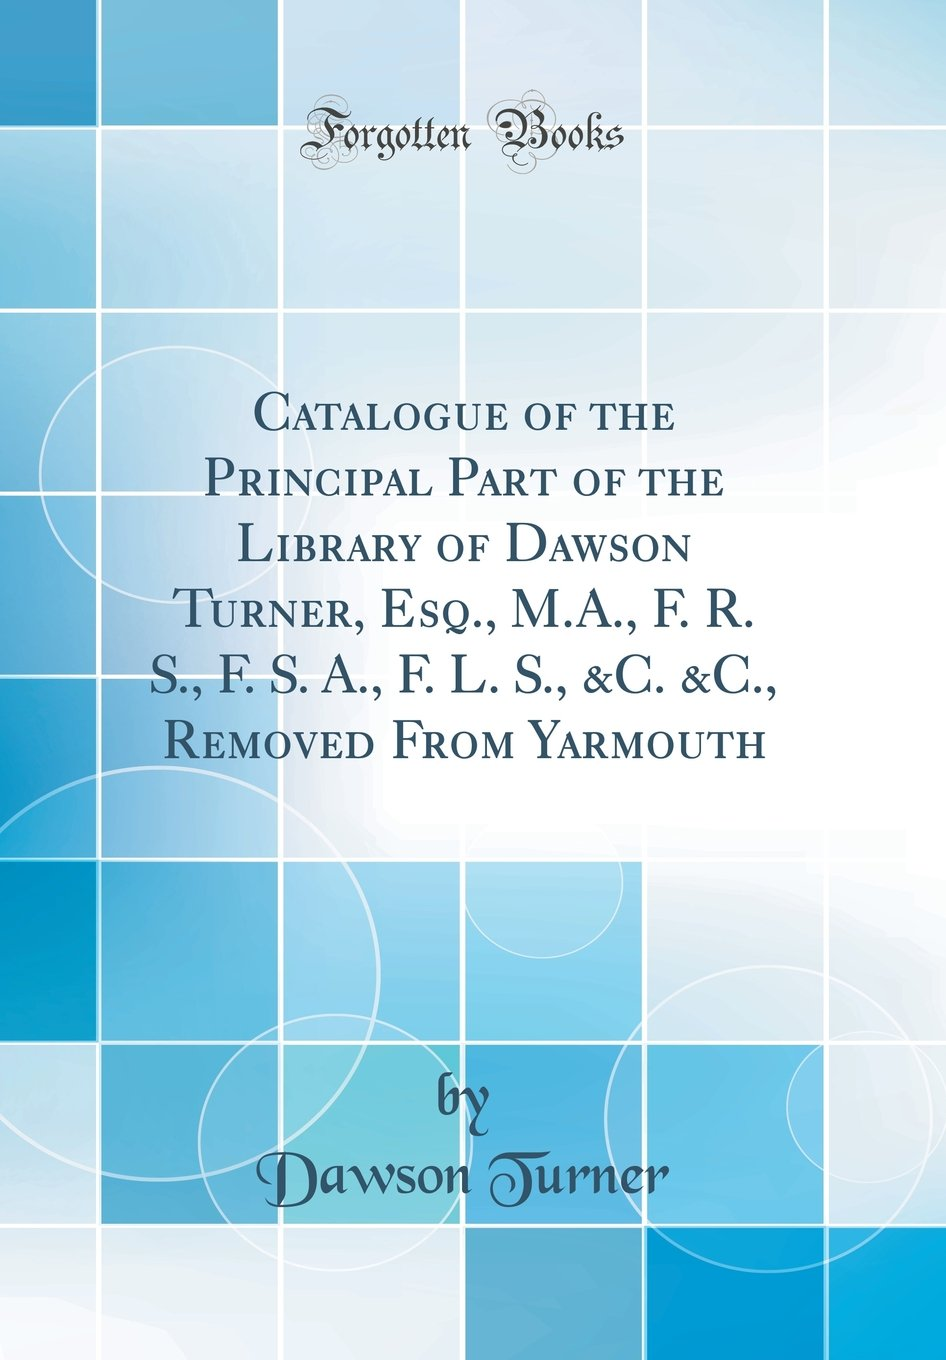 Download Catalogue of the Principal Part of the Library of Dawson Turner, Esq., M.A., F. R. S., F. S. A., F. L. S., &C. &C., Removed From Yarmouth (Classic Reprint) ebook